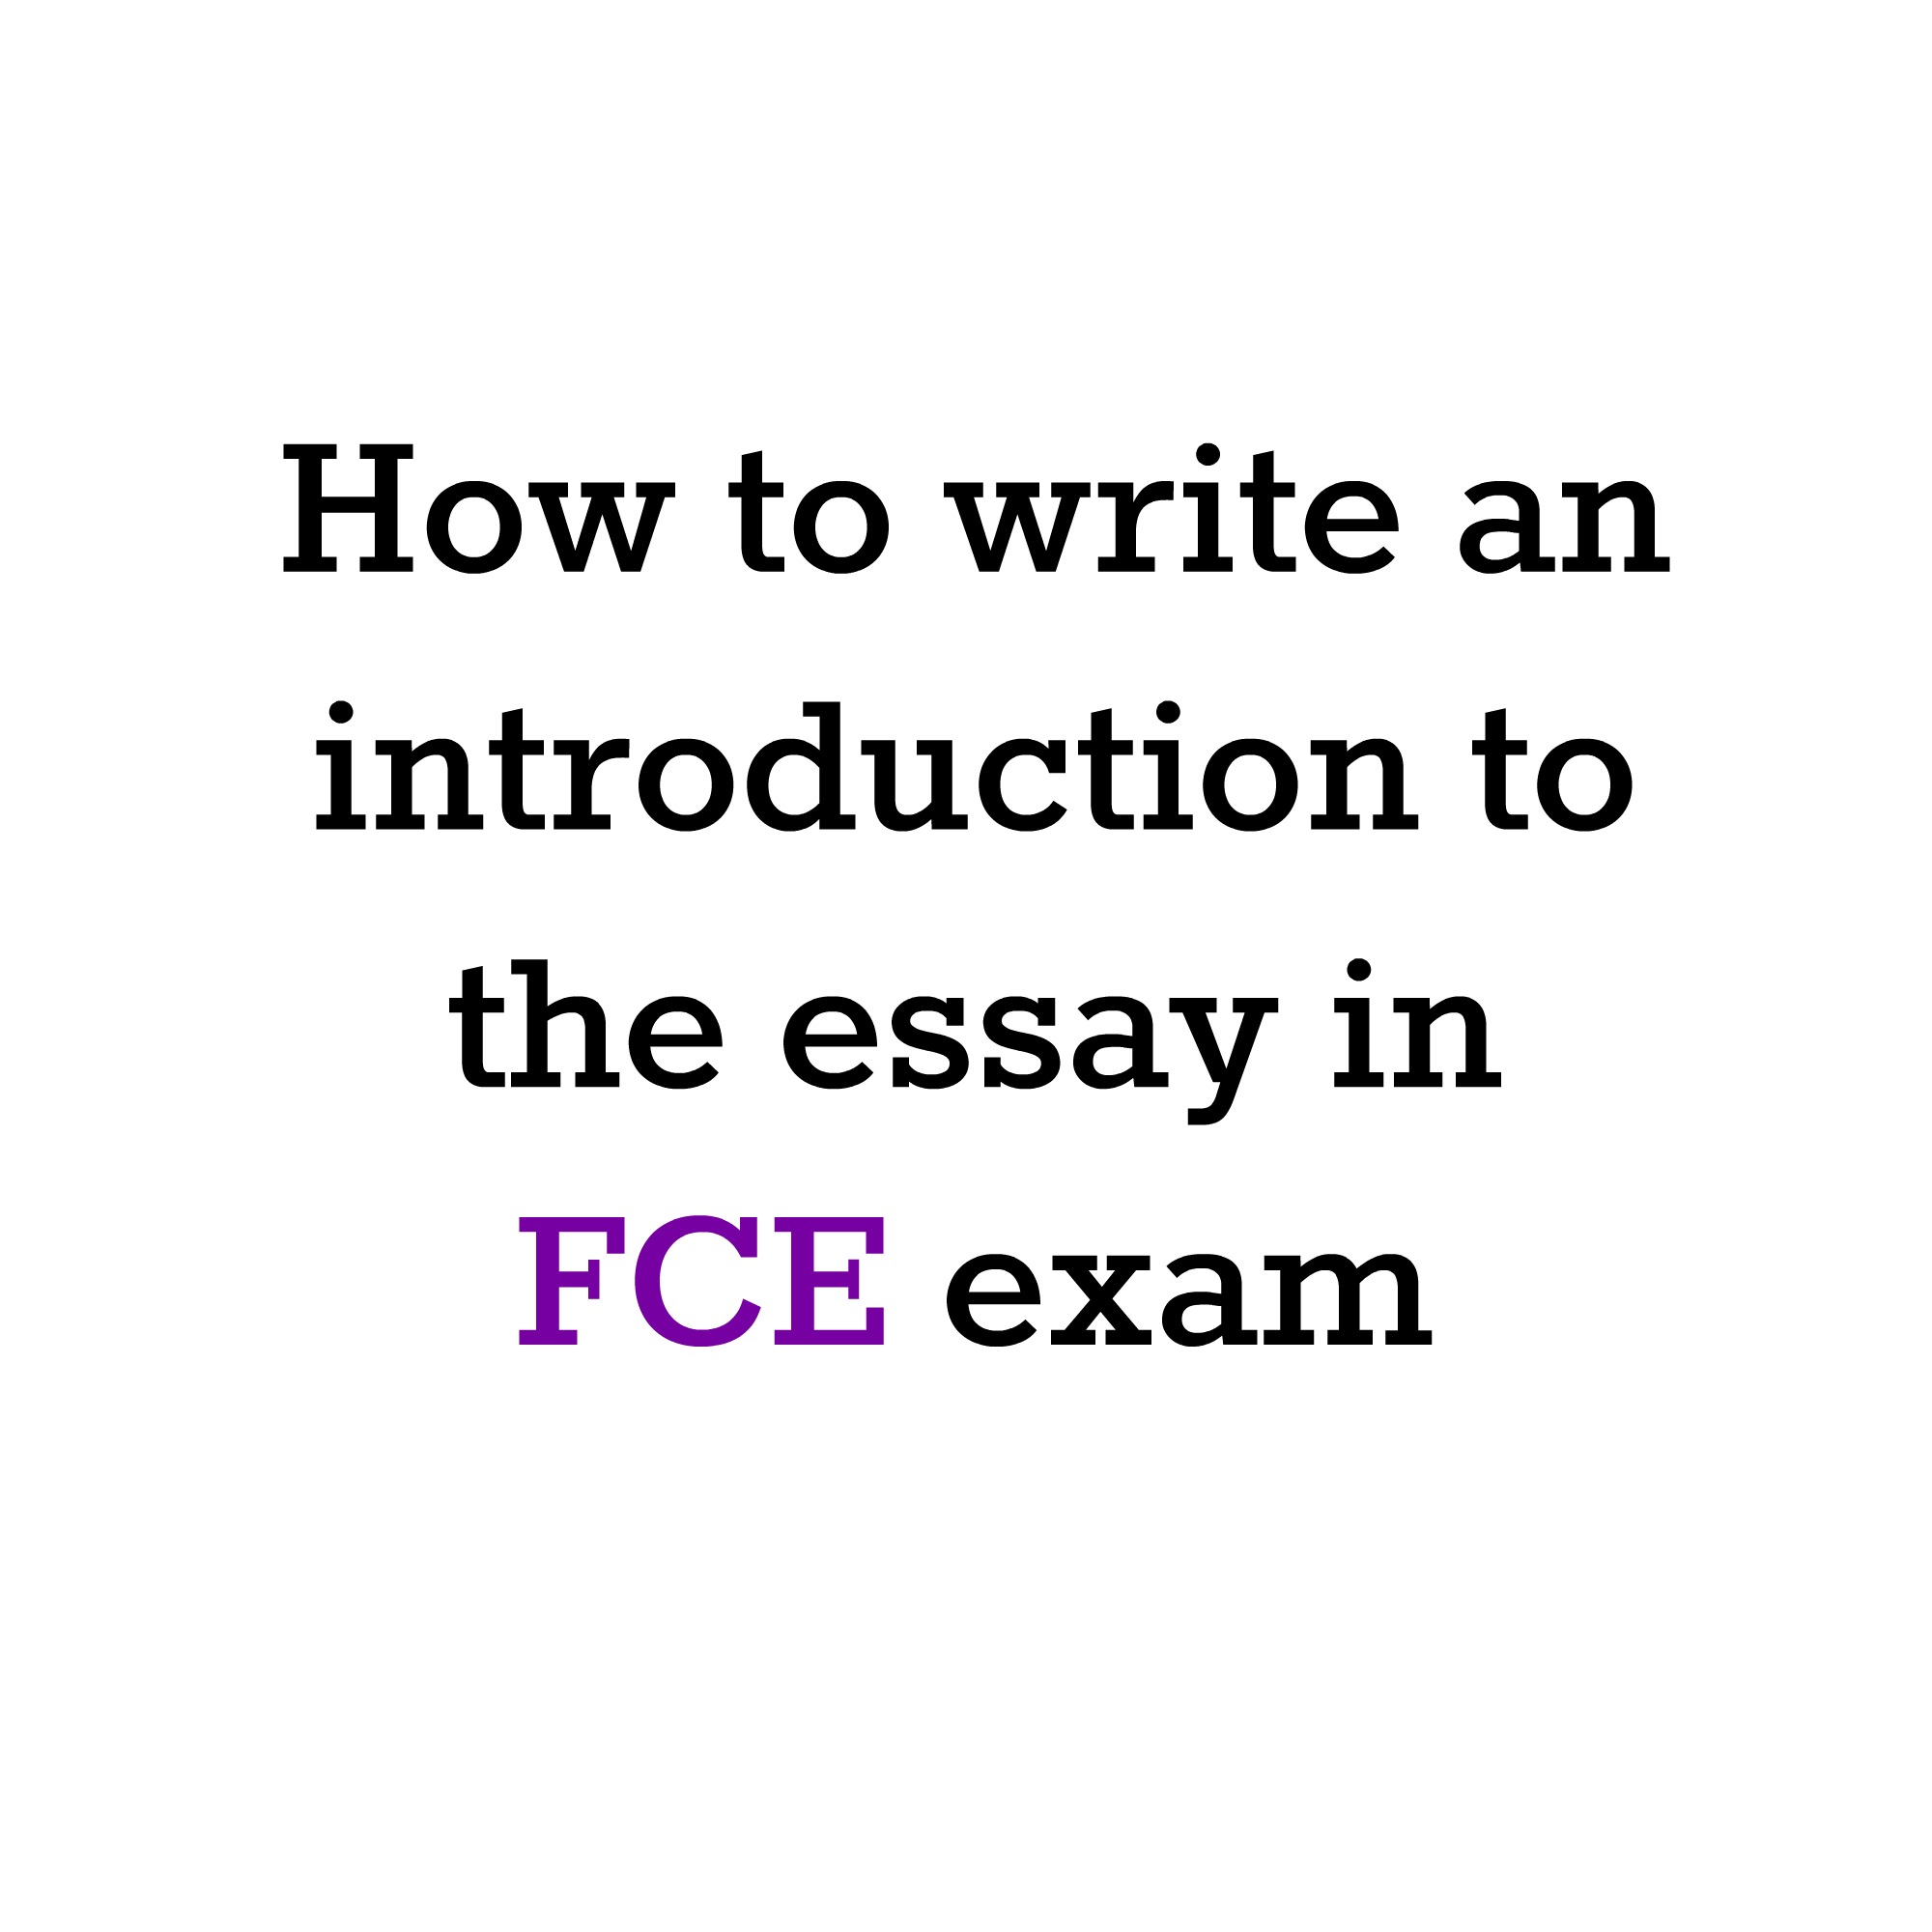 fce writing part 1 essay b english exam help how to write an introduction to the essay in fce exam